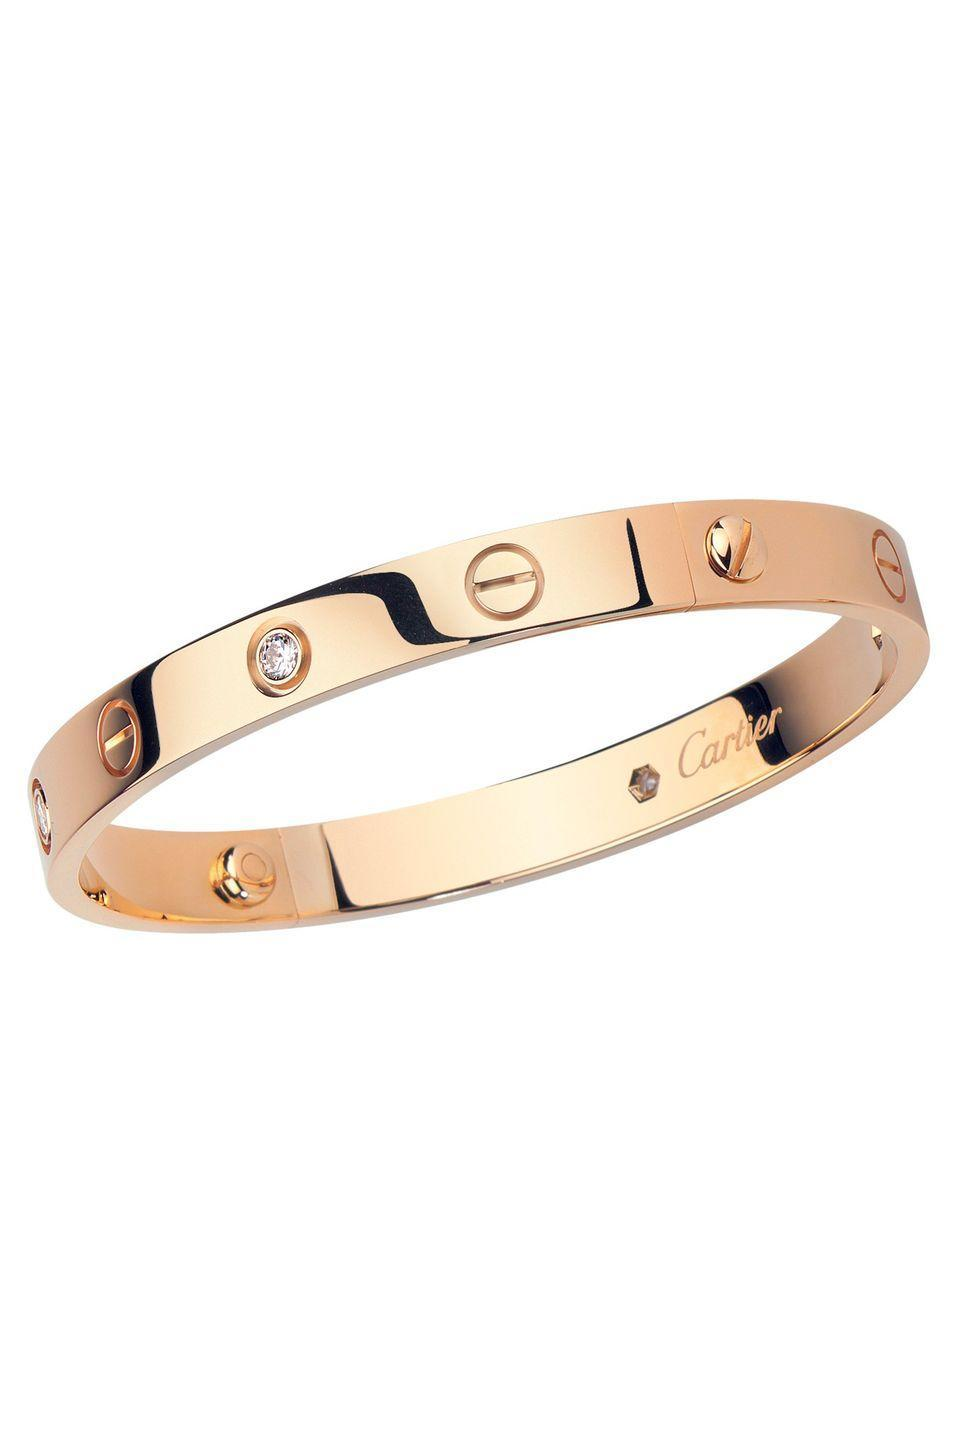 """<p><a class=""""link rapid-noclick-resp"""" href=""""http://www.cartier.co.uk/en-gb/collections/jewelry/collections/love/bracelets/b6035617-love-bracelet.html"""" rel=""""nofollow noopener"""" target=""""_blank"""" data-ylk=""""slk:SHOP NOW"""">SHOP NOW</a></p><p>The Love bangle is one of the most searched-for pieces of jewellery on Google, and with good reason; it's an iconic, easy-to-wear piece imbued with a romantic underlying message. </p><p>Created by Italian jewellery designer Aldo Cipullo for <a href=""""https://www.harpersbazaar.com/uk/fashion/jewellery-watches/a35418680/cartier-classics/"""" rel=""""nofollow noopener"""" target=""""_blank"""" data-ylk=""""slk:Cartier"""" class=""""link rapid-noclick-resp"""">Cartier</a> in 1969, the bracelet was intended as a 'modern handcuff' for men or women: its oval shape sits as close to the skin as possible and it is secured around your wrist with tiny screws to signify the permanence of true love. </p><p> Legend has it that when the bracelet was first launched, Cartier gifted pairs of them to some of the most famous couples of the 20th century, including the Duke and Duchess of Windsor; Elizabeth Taylor and Richard Burton; Ali MacGraw and Steve McQueen; and Sophia Loren and Carlo Ponti. </p><p>Over 50 years later, the bracelet is still so popular, it is said New York hospitals keep mini Love screwdrivers on hand in case they need to remove bracelets from patients in an emergency. </p><p>Pink gold Love bracelet, £5,400, <a href=""""https://www.cartier.co.uk/en-gb/collections/jewelry/collections/love/bracelets/b6035617-love-bracelet.html"""" rel=""""nofollow noopener"""" target=""""_blank"""" data-ylk=""""slk:Cartier"""" class=""""link rapid-noclick-resp"""">Cartier</a></p>"""